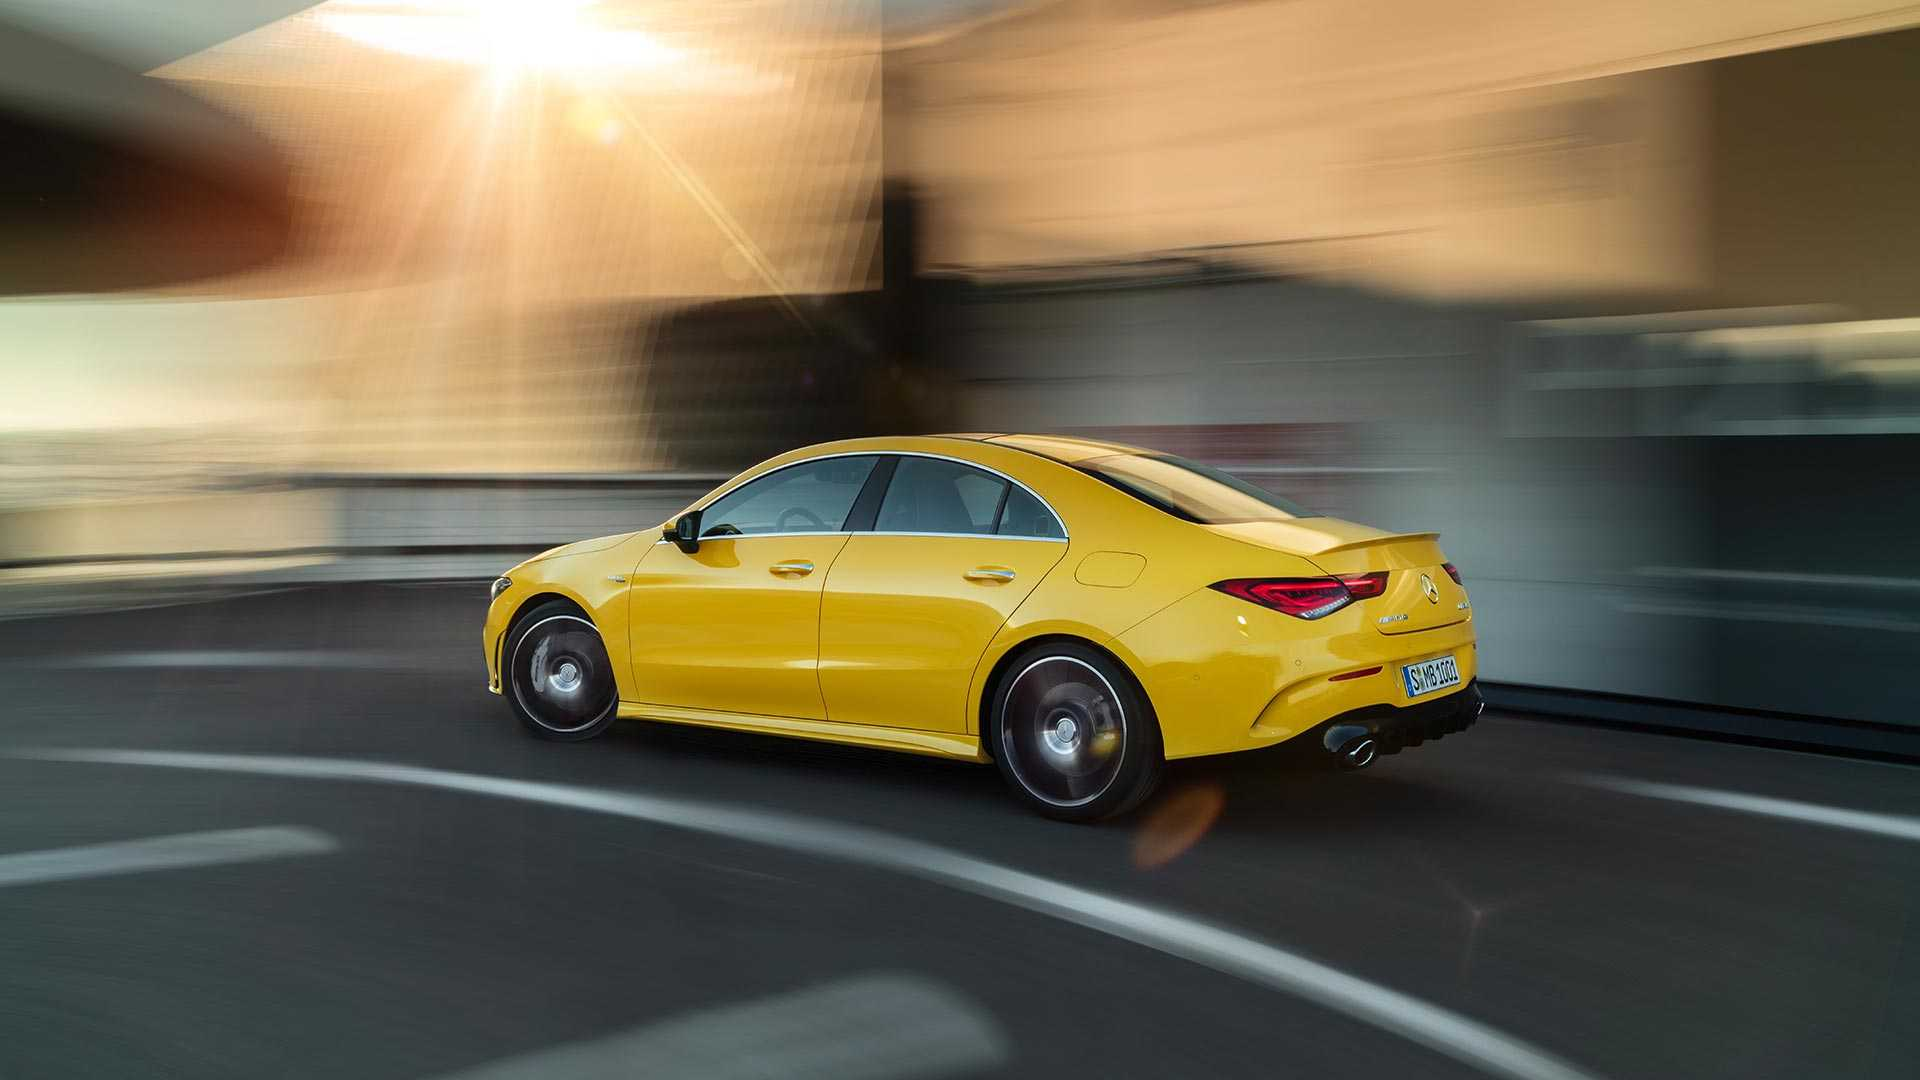 2020 Mercedes-AMG CLA 35 4MATIC (Color: Sun Yellow) Rear Three-Quarter Wallpapers (9)